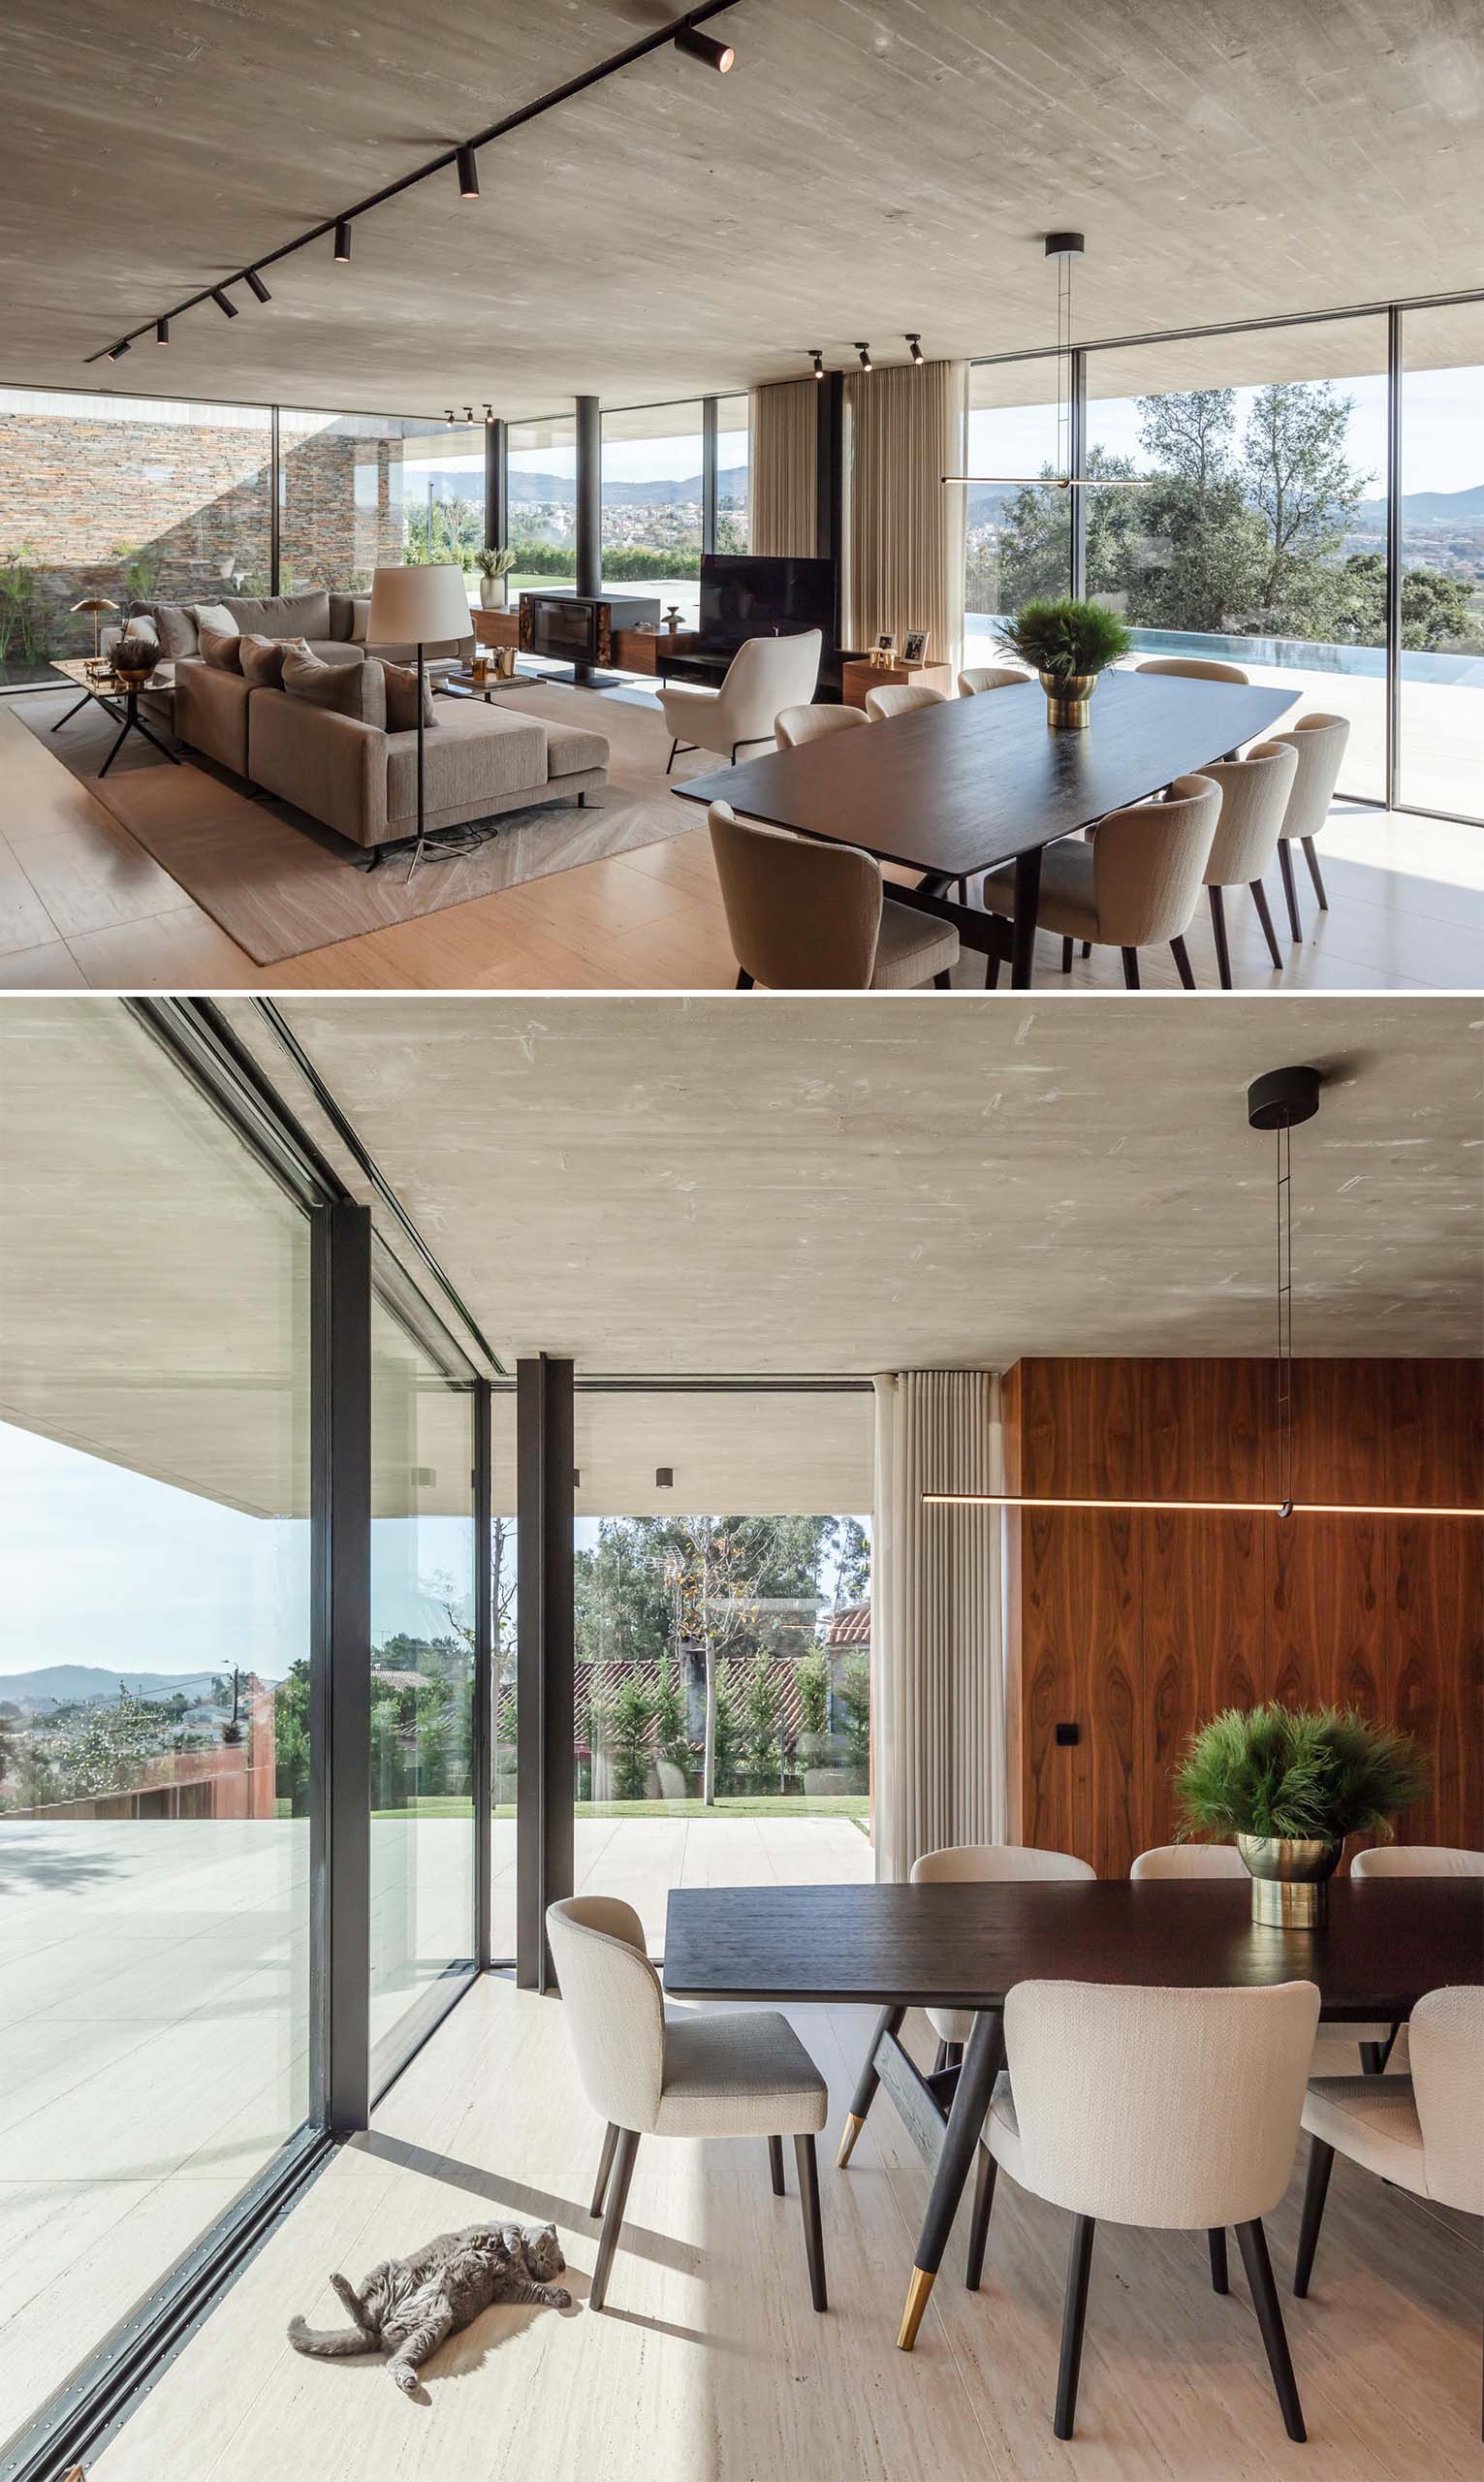 A modern open plan dining area with a wood table, upholstered chairs, and a minimalist linear suspension lamp.